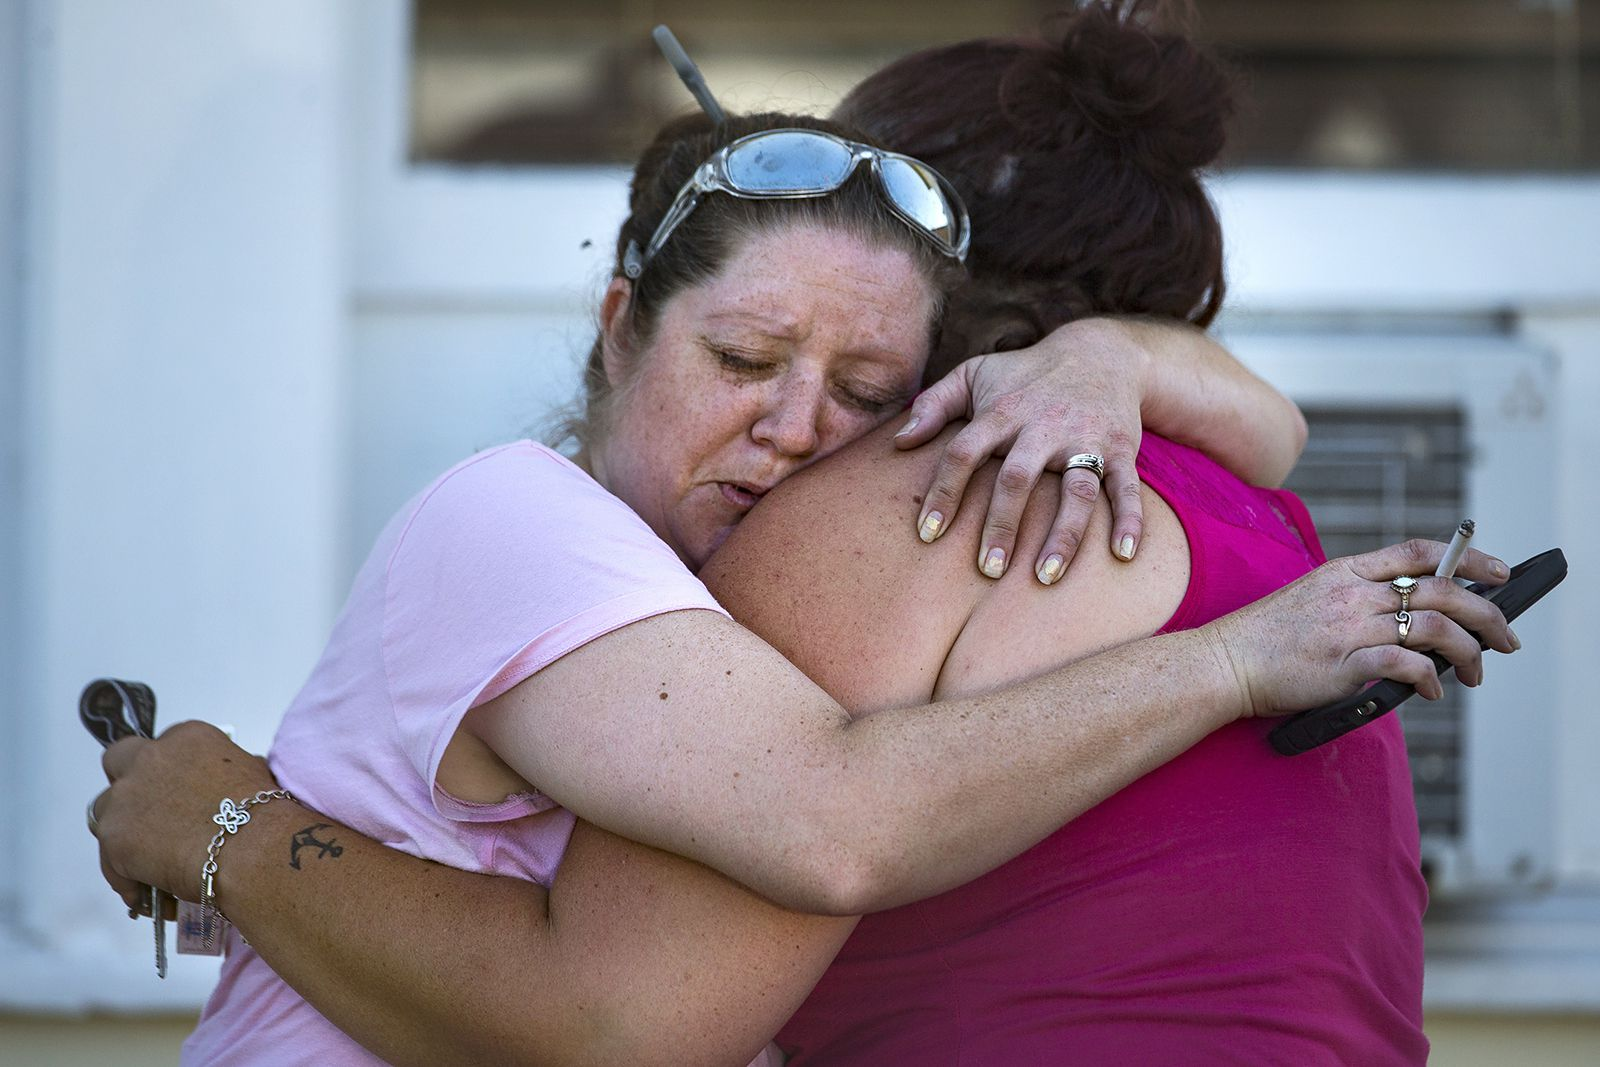 Carrie Matula embraces a woman after the mass shooting at First Baptist Church in Sutherland Springs. Matula said she heard the shooting from the gas station where she works a block away.